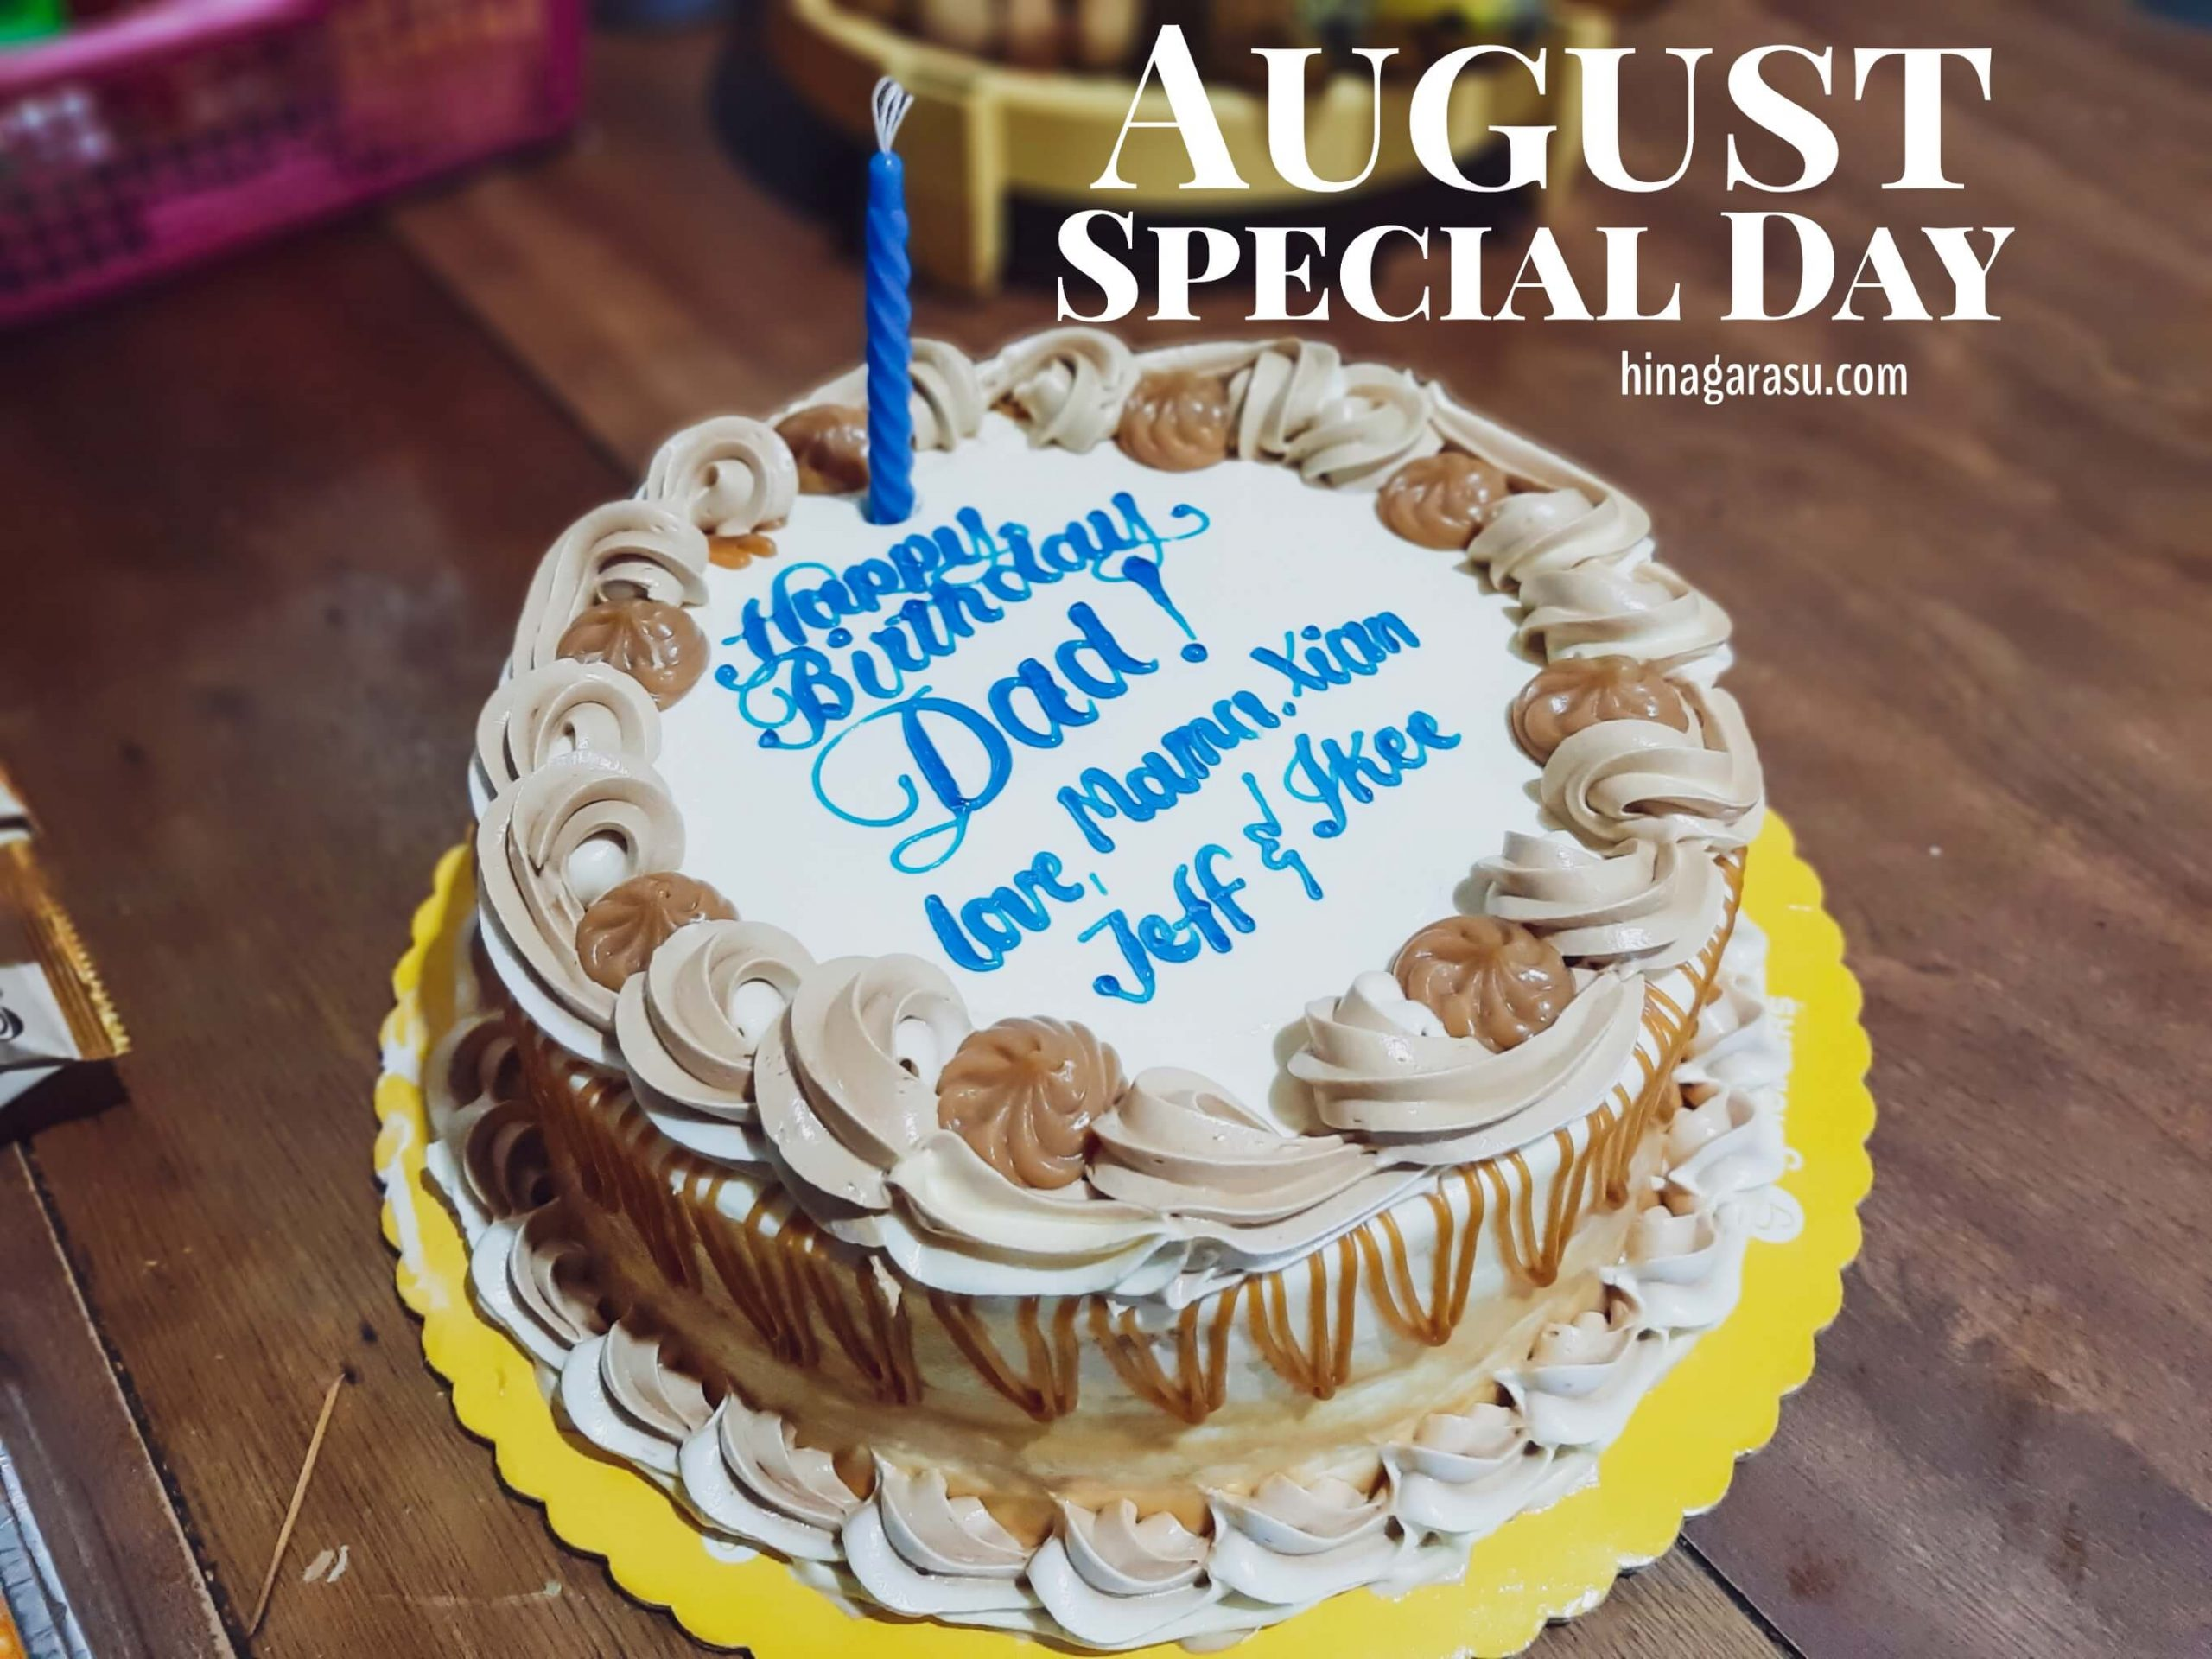 August Special Day!